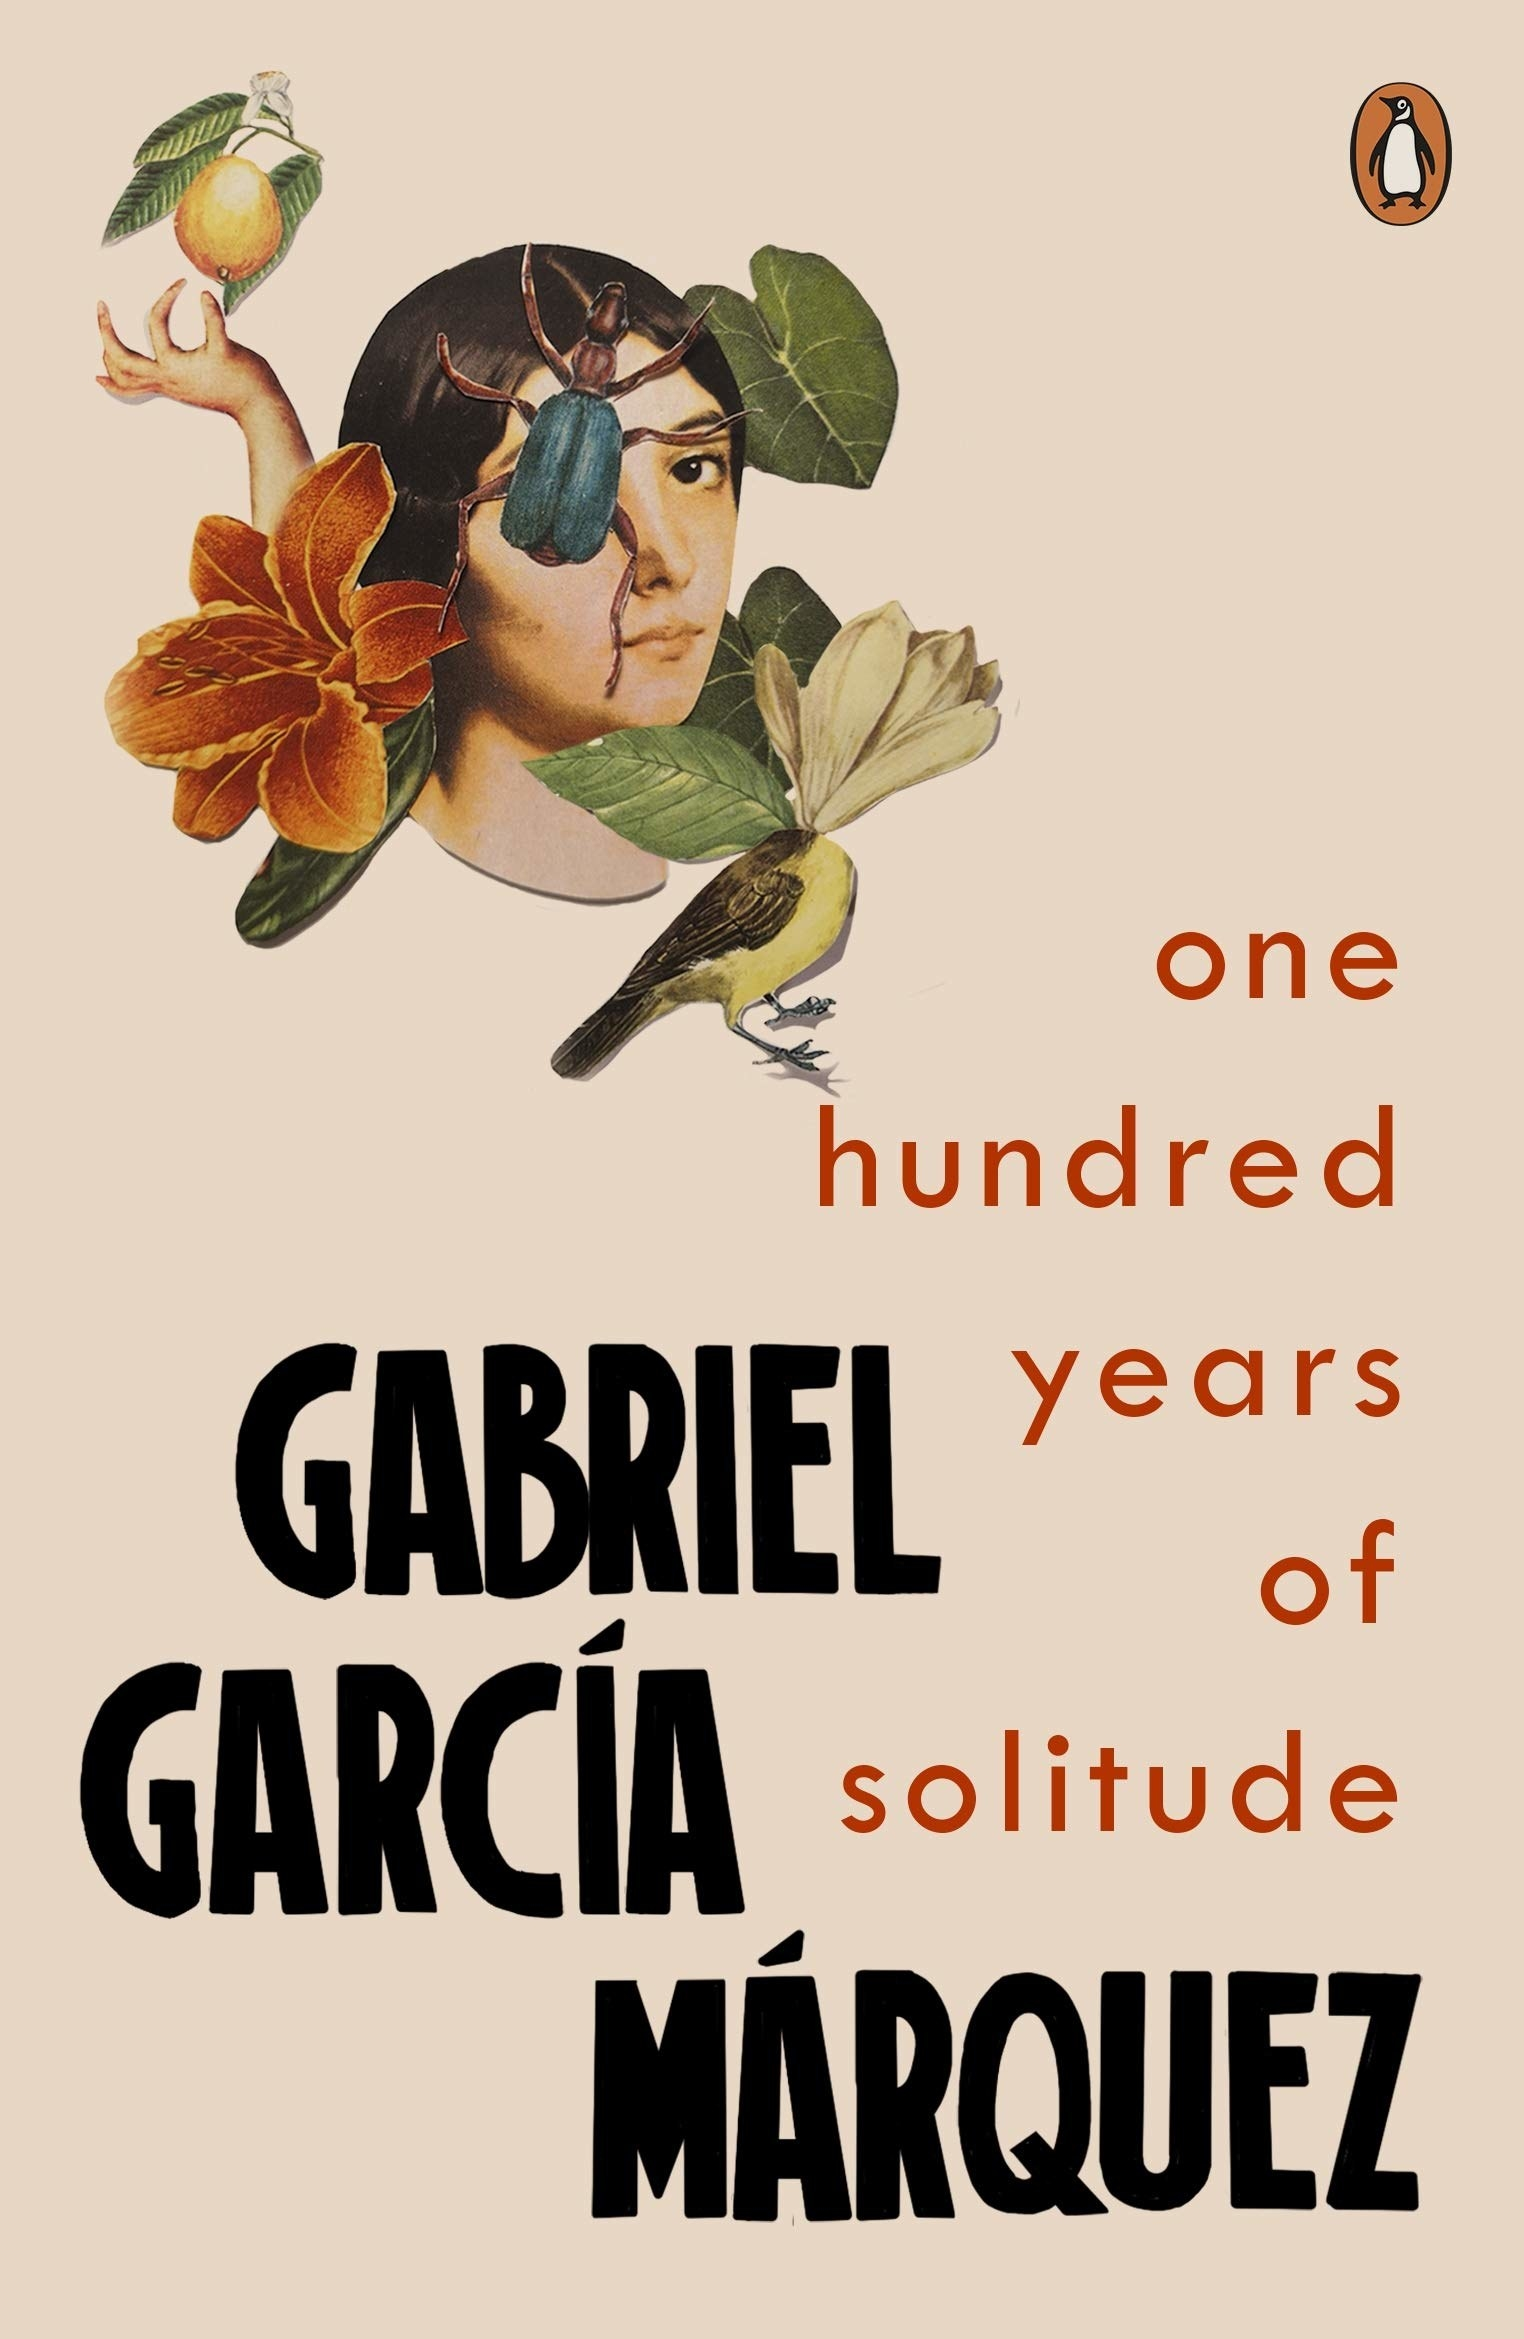 A collage with a woman, a beetle, a bird, and flowers on the cover of One Hundred Years of Solitude